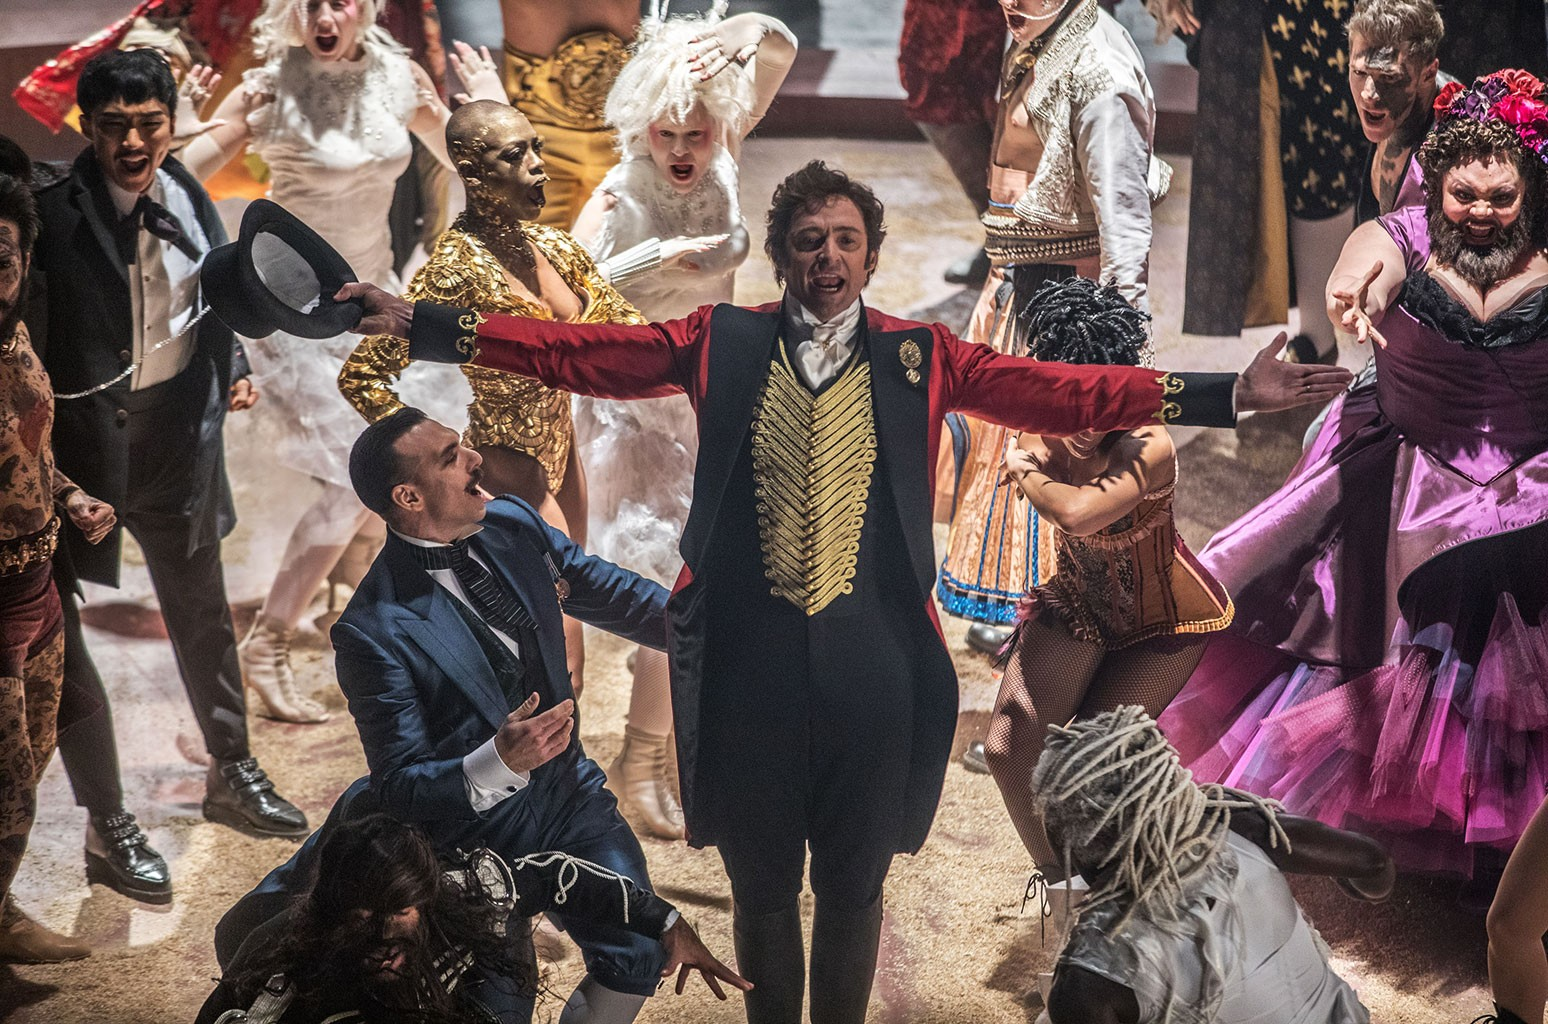 Hugh Jackman as P.T. Barnum in 'The Greatest Showman'